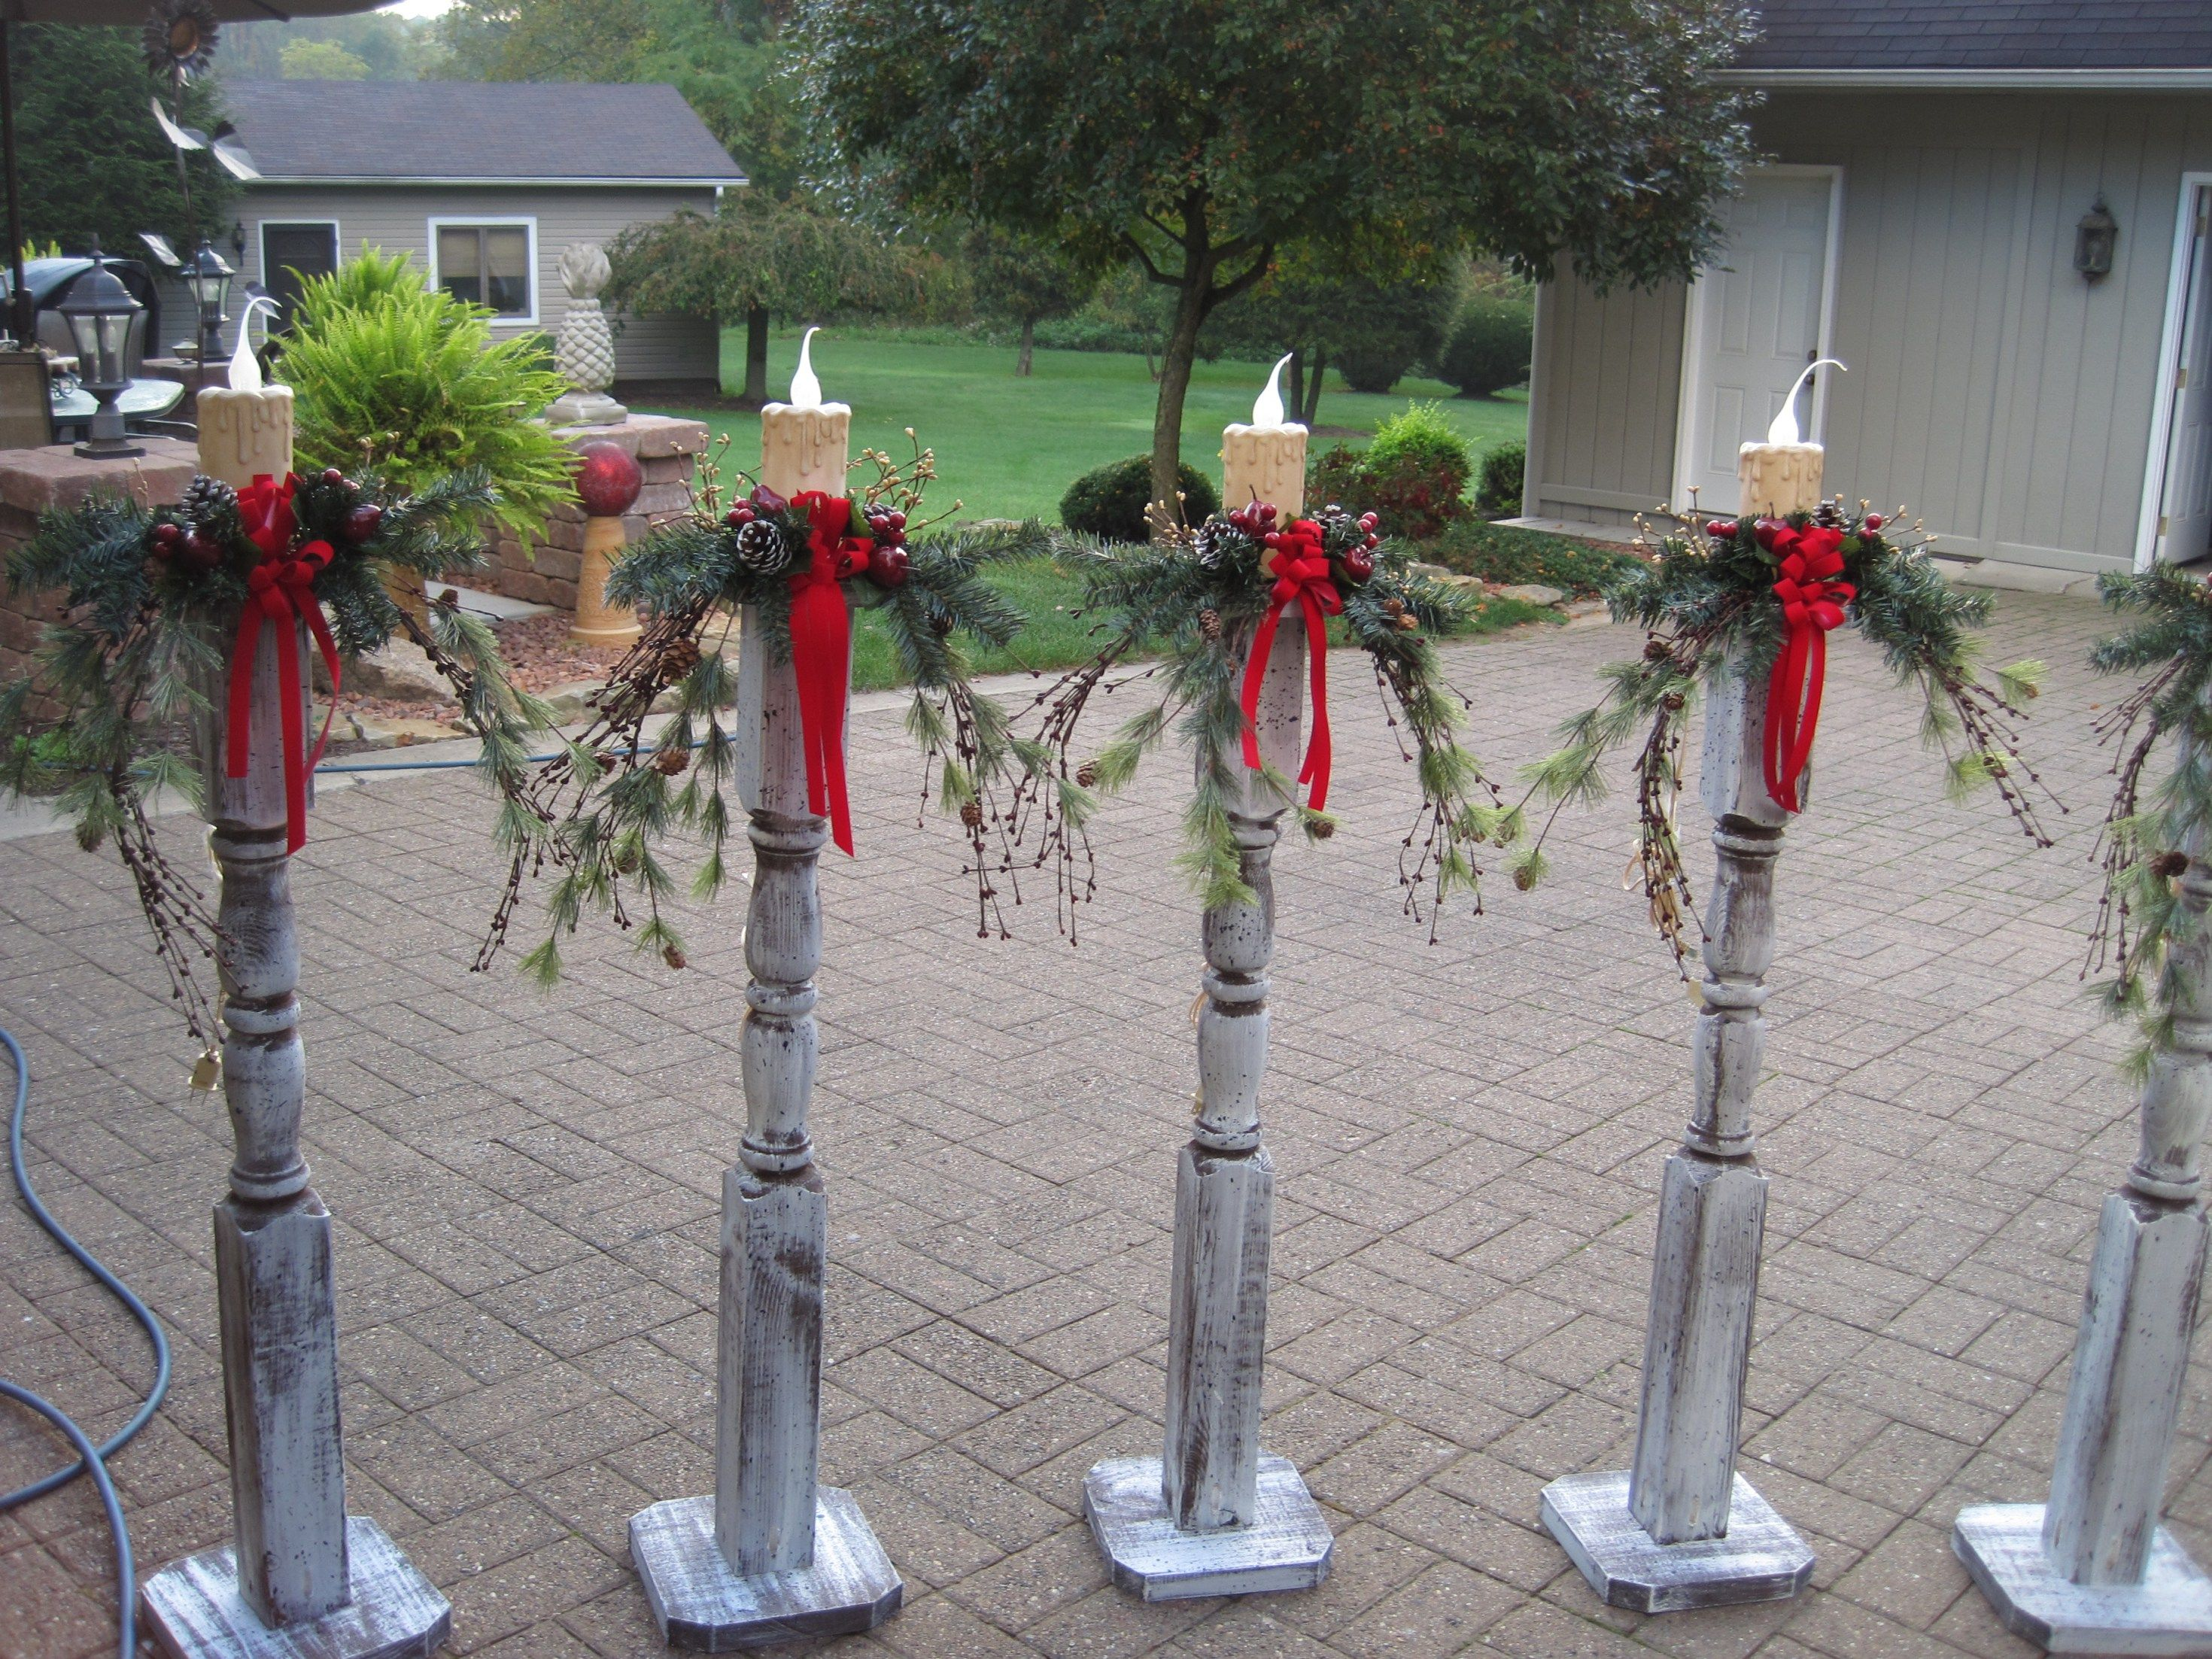 50 cheap easy diy outdoor christmas decorations pinterest diy check out these diy outdoor christmas decorations that make it cheap and easy to get your porch and yard looking festive for the holidays solutioingenieria